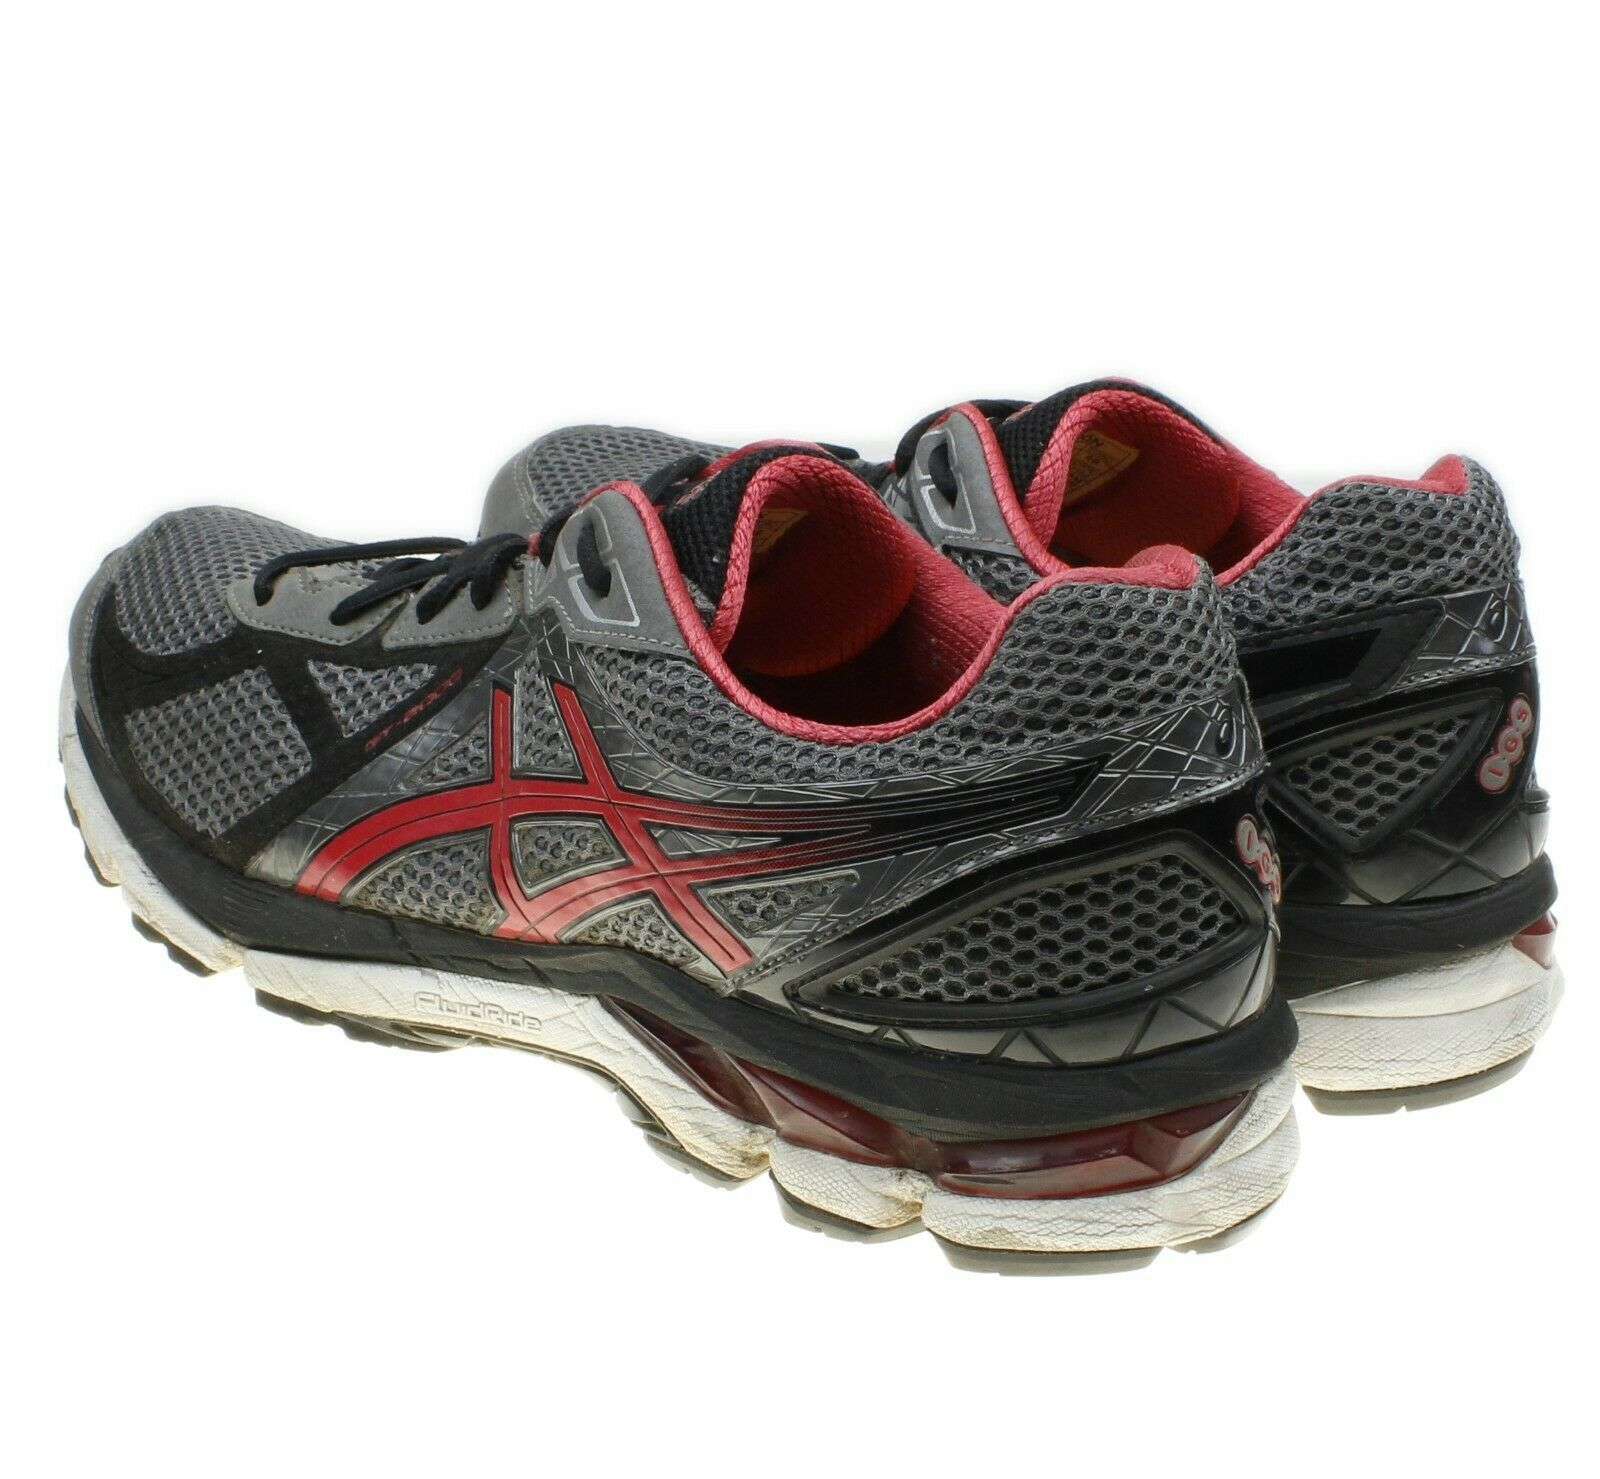 Asics GT 2000 v 3 Gray Mens Size 11.5 EU 46 Running Shoes Sneakers T500N image 5